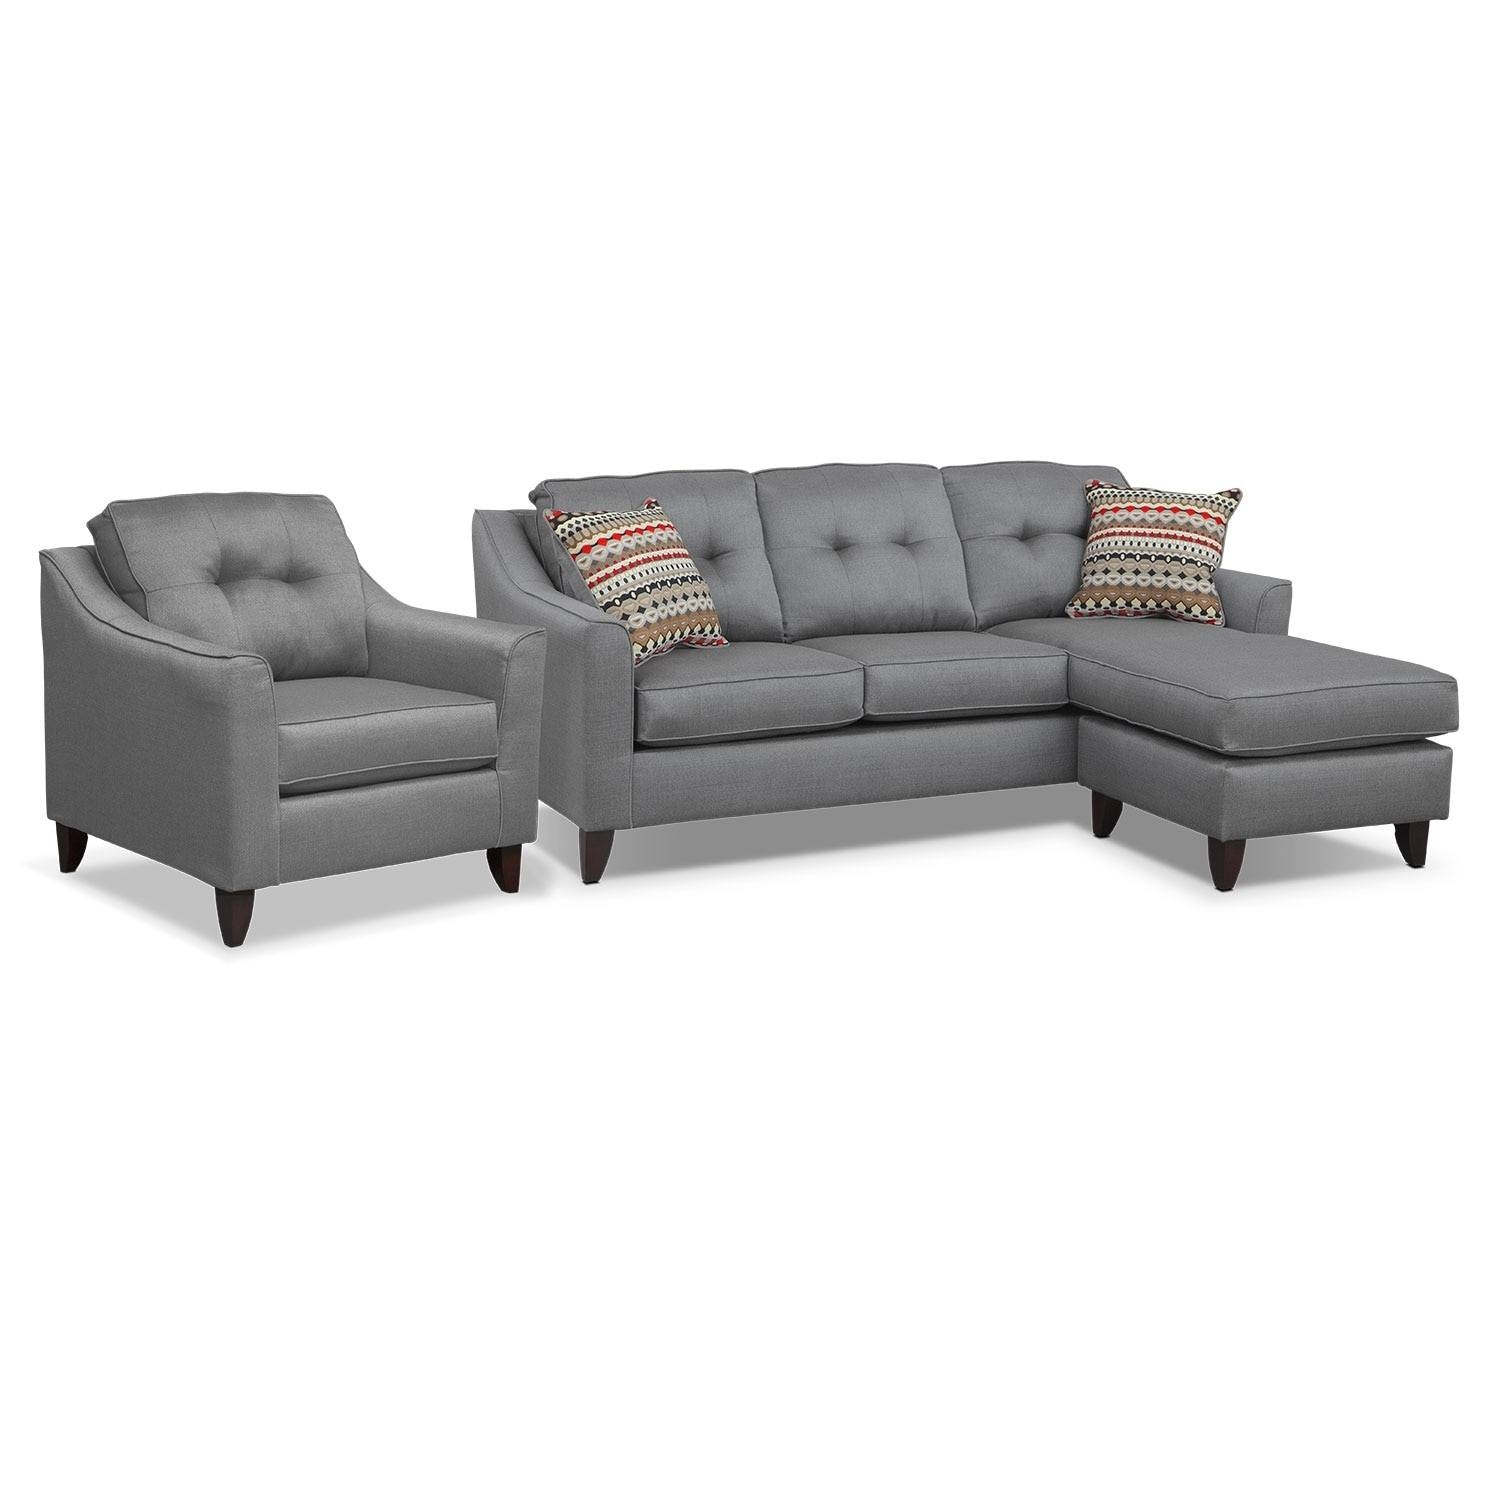 Marco Chaise Sofa And Chair Set - Gray | American Signature Furniture regarding Sofa and Chair Set (Image 19 of 30)